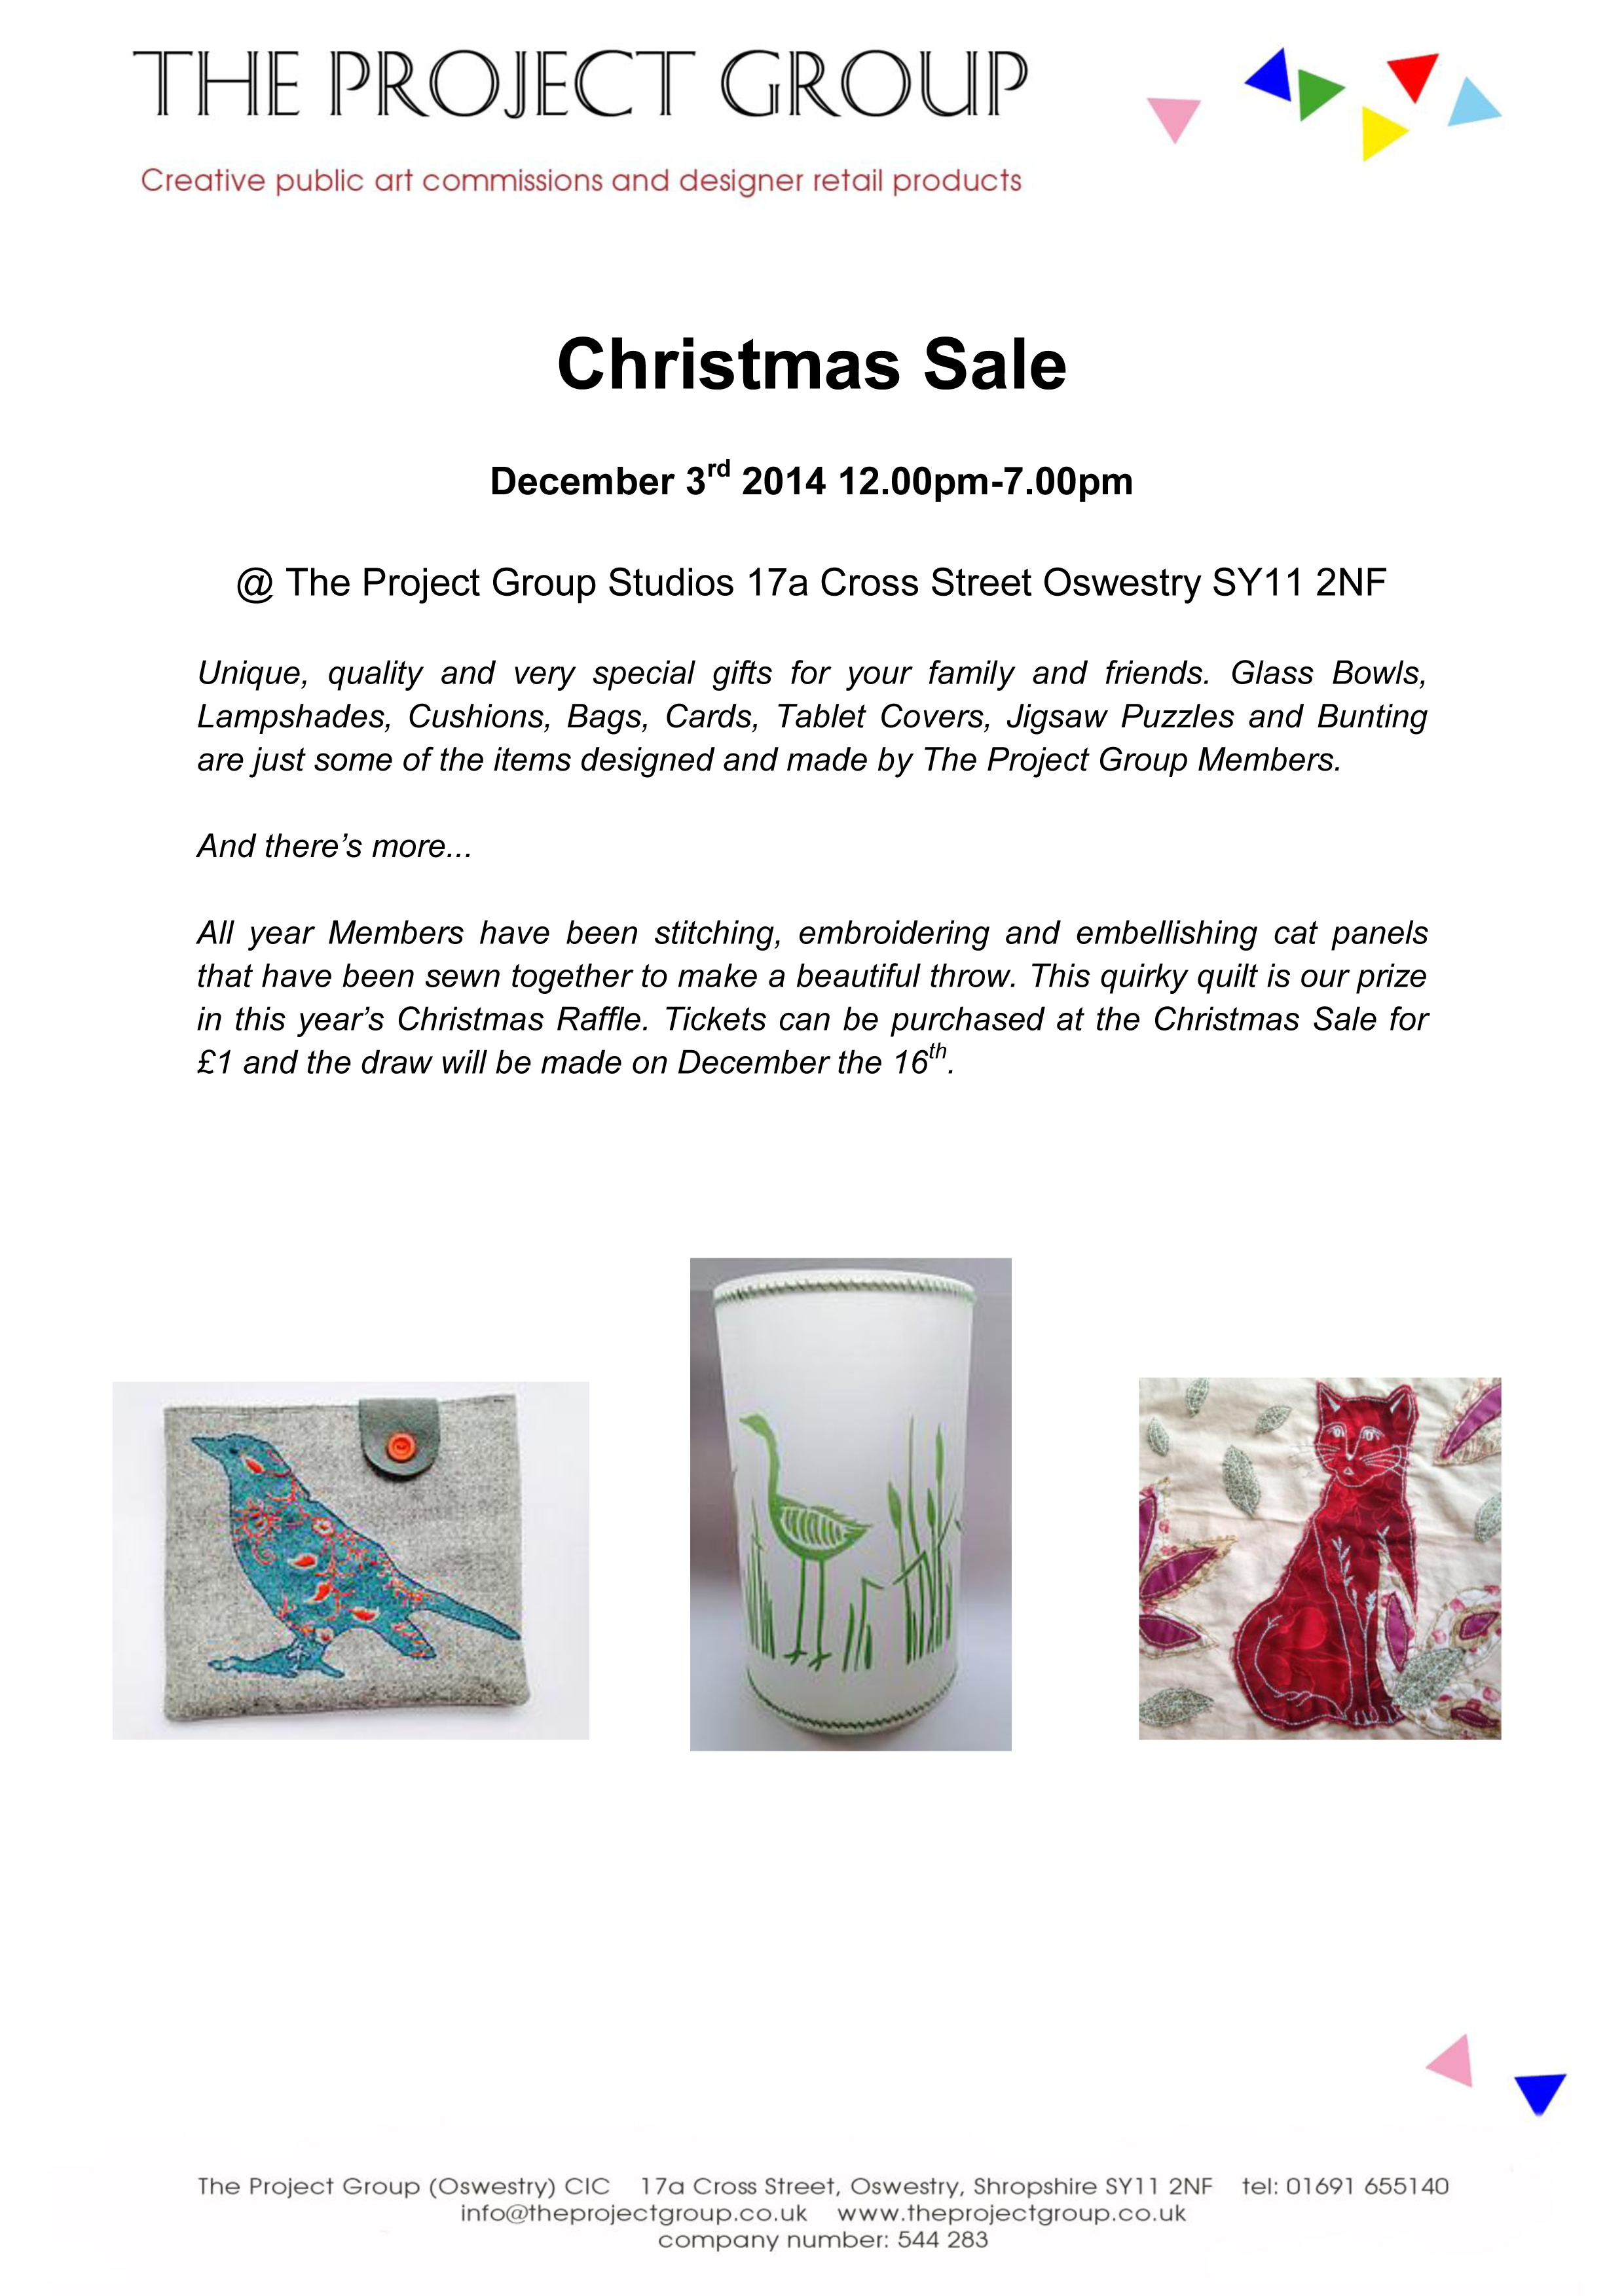 CHRISTMAS SALE BY THE PROJECT GROUP! | Inside Out Art Group